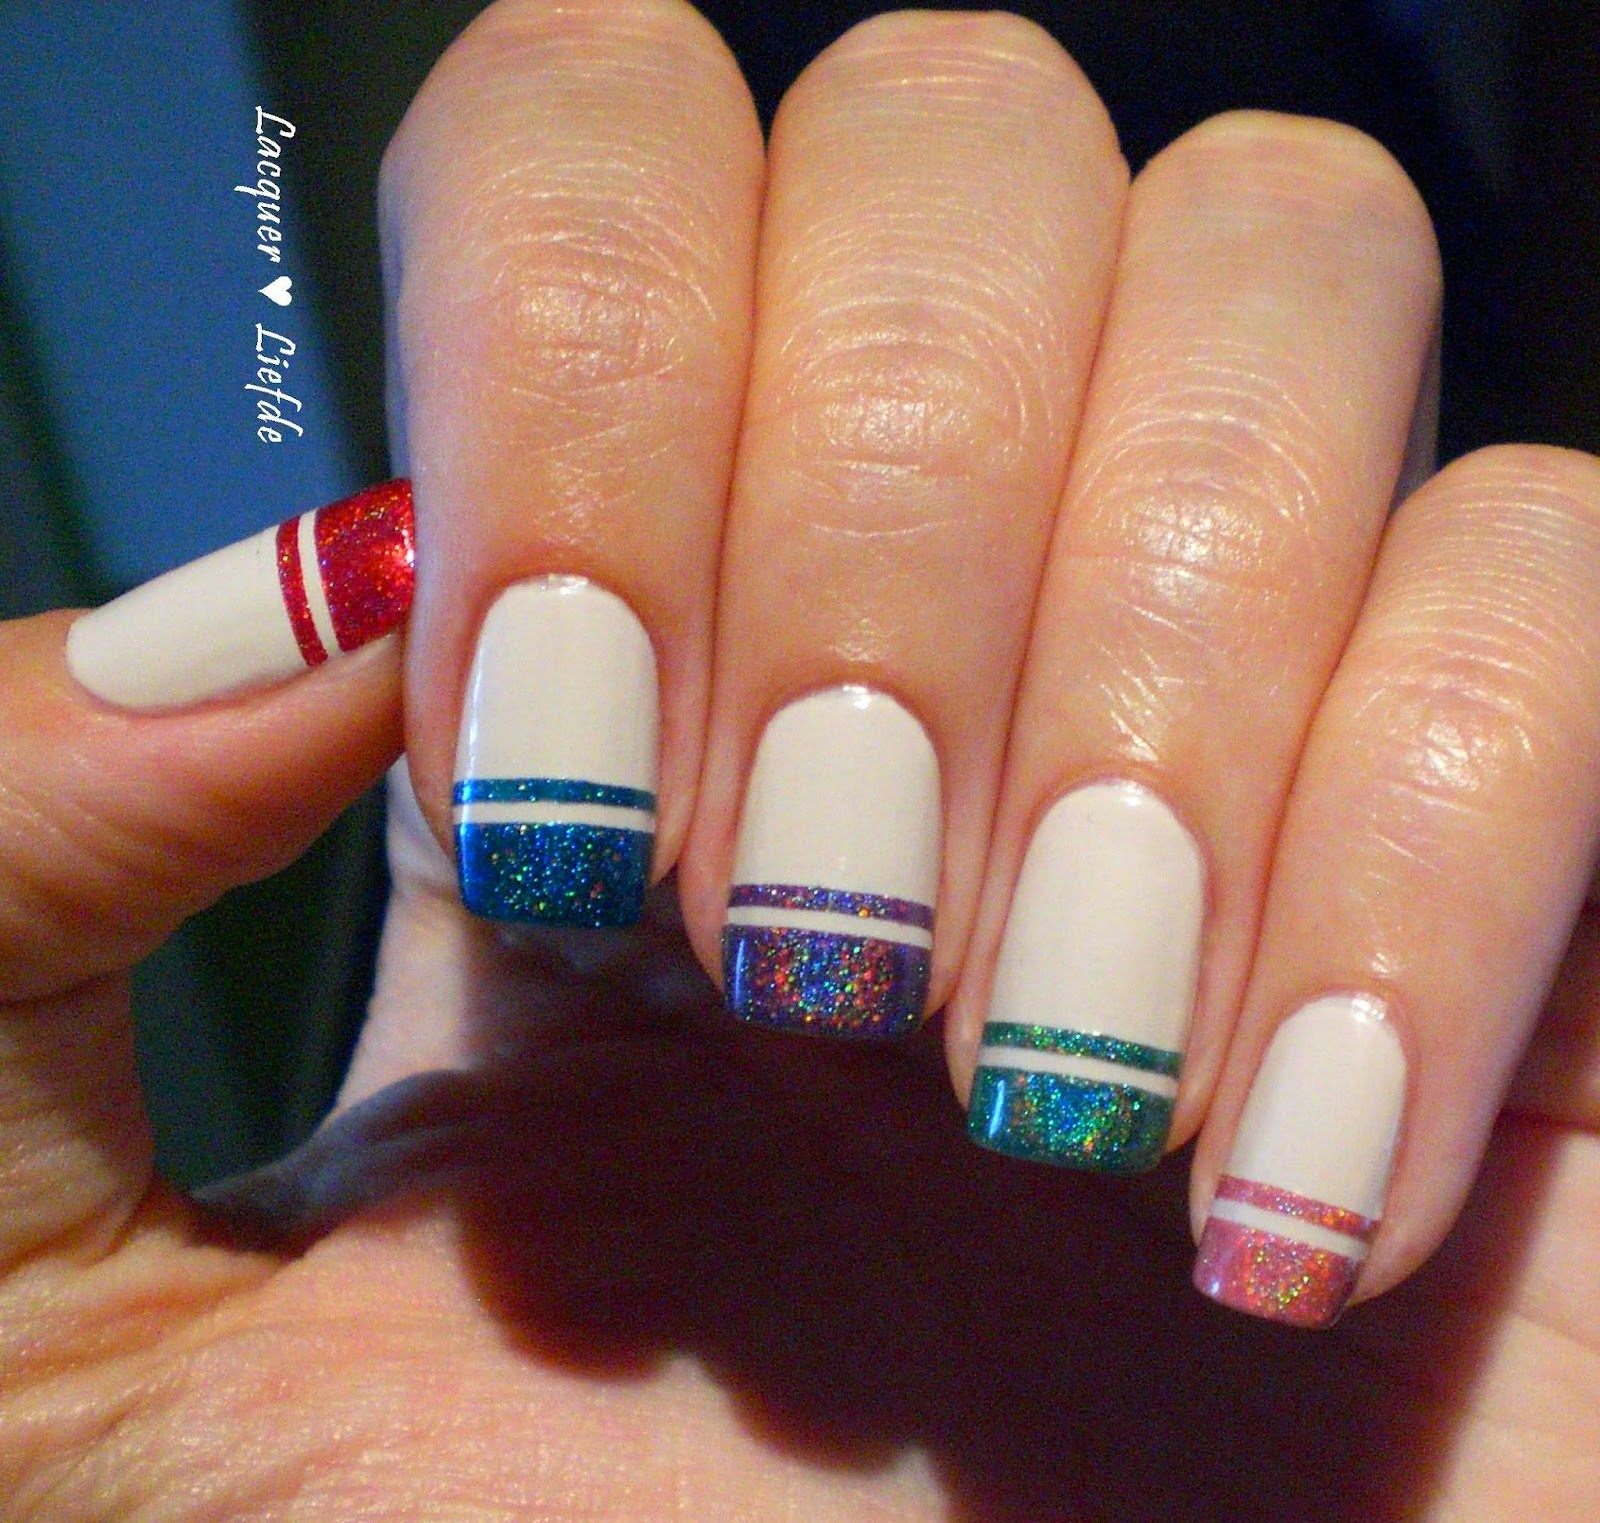 I Love Nail Polish - Double Line French Manicure